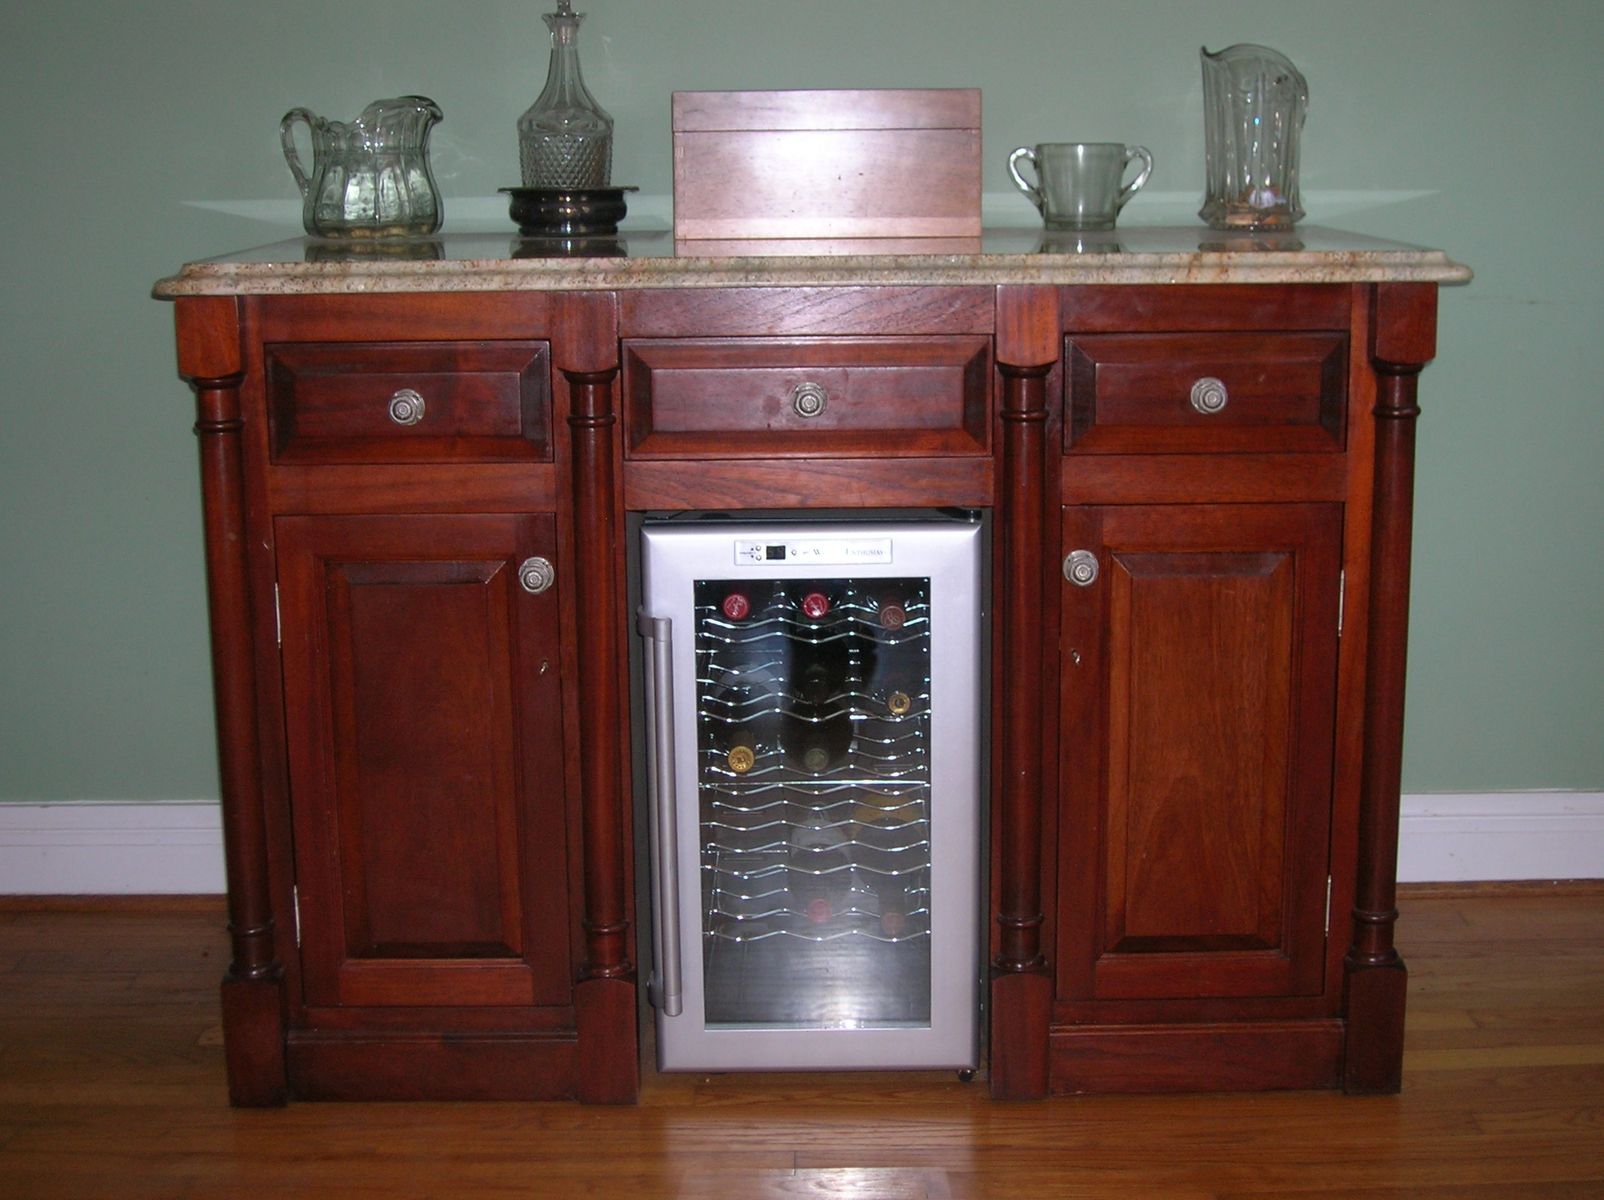 ikea kitchen carts southwest custom wine bar by mike willis woodworking | custommade.com